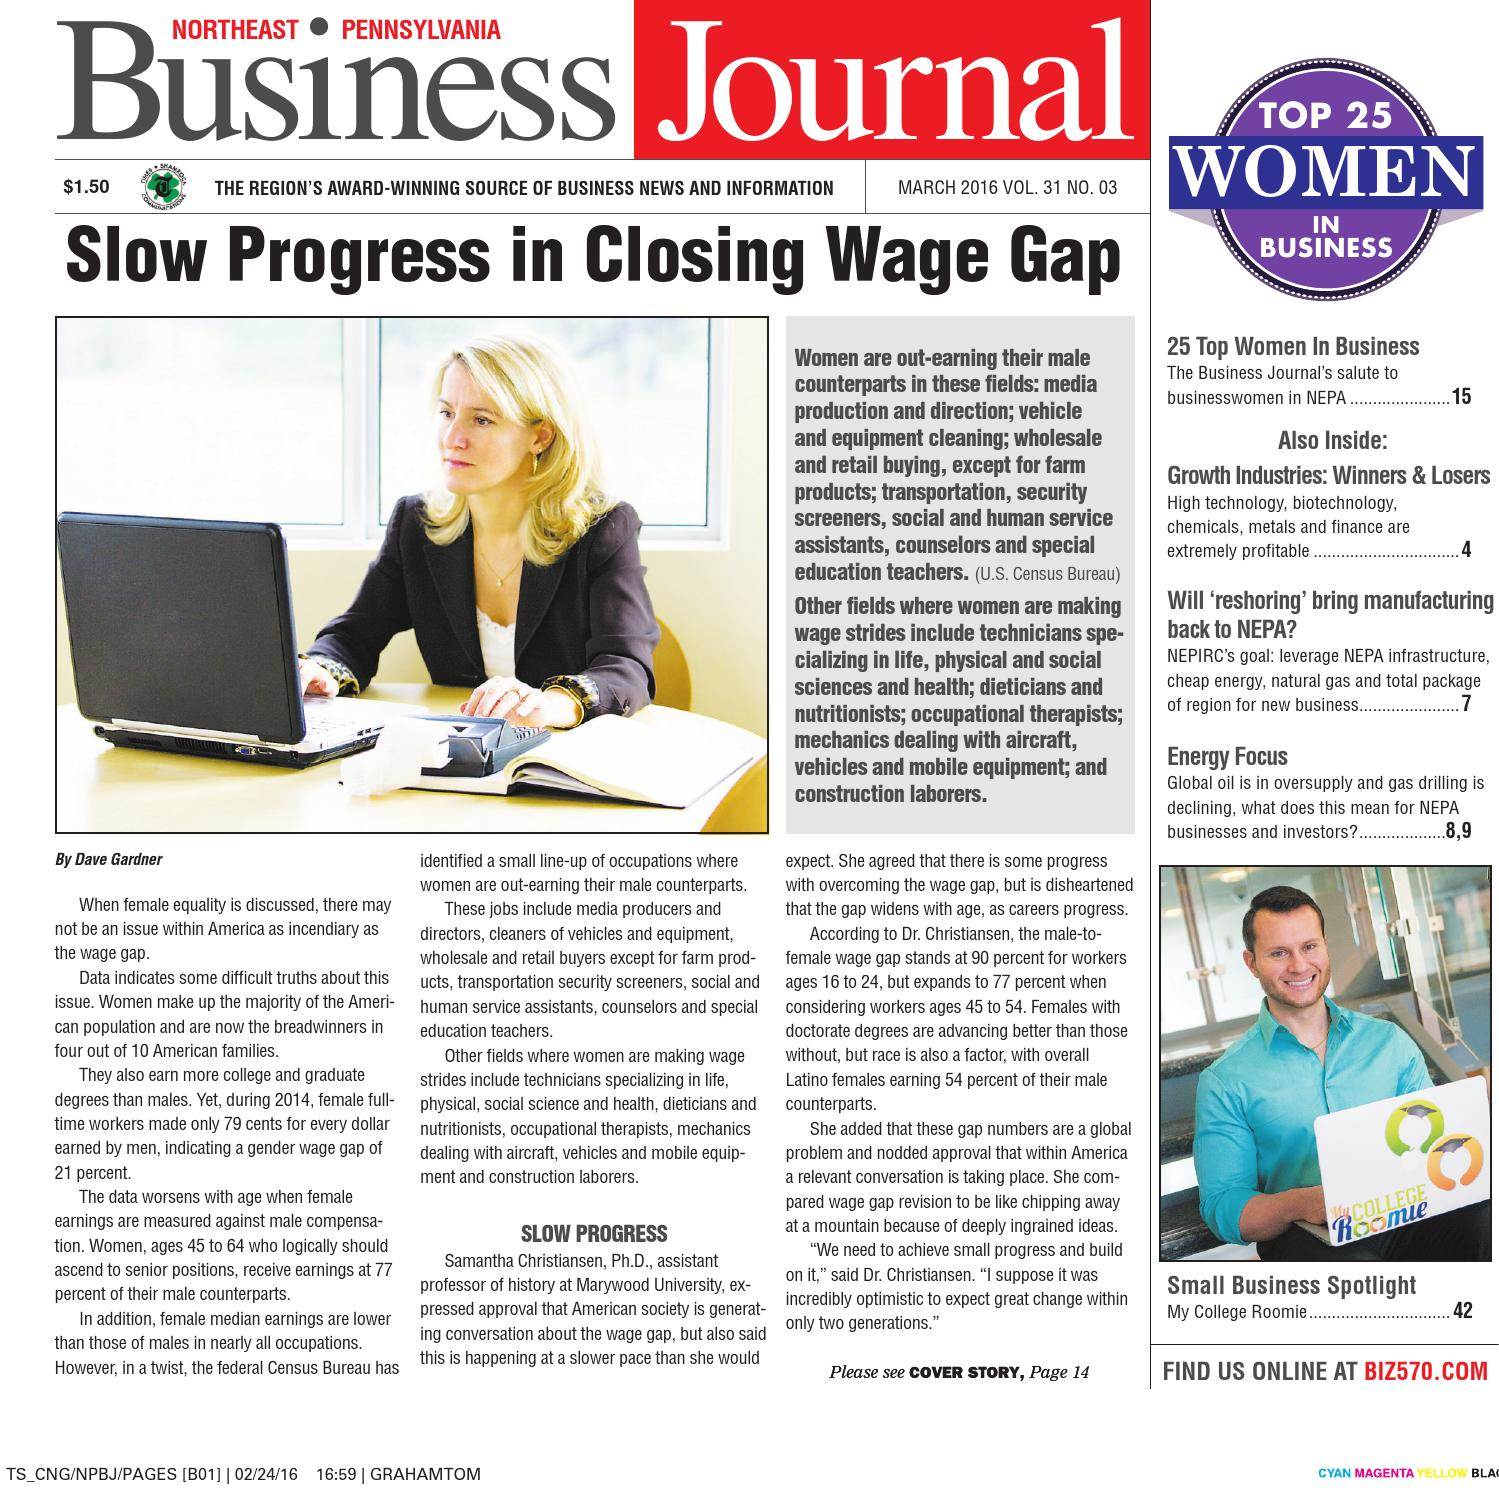 Northeast Pennsylvania Business Journal - March 2016 by CNG